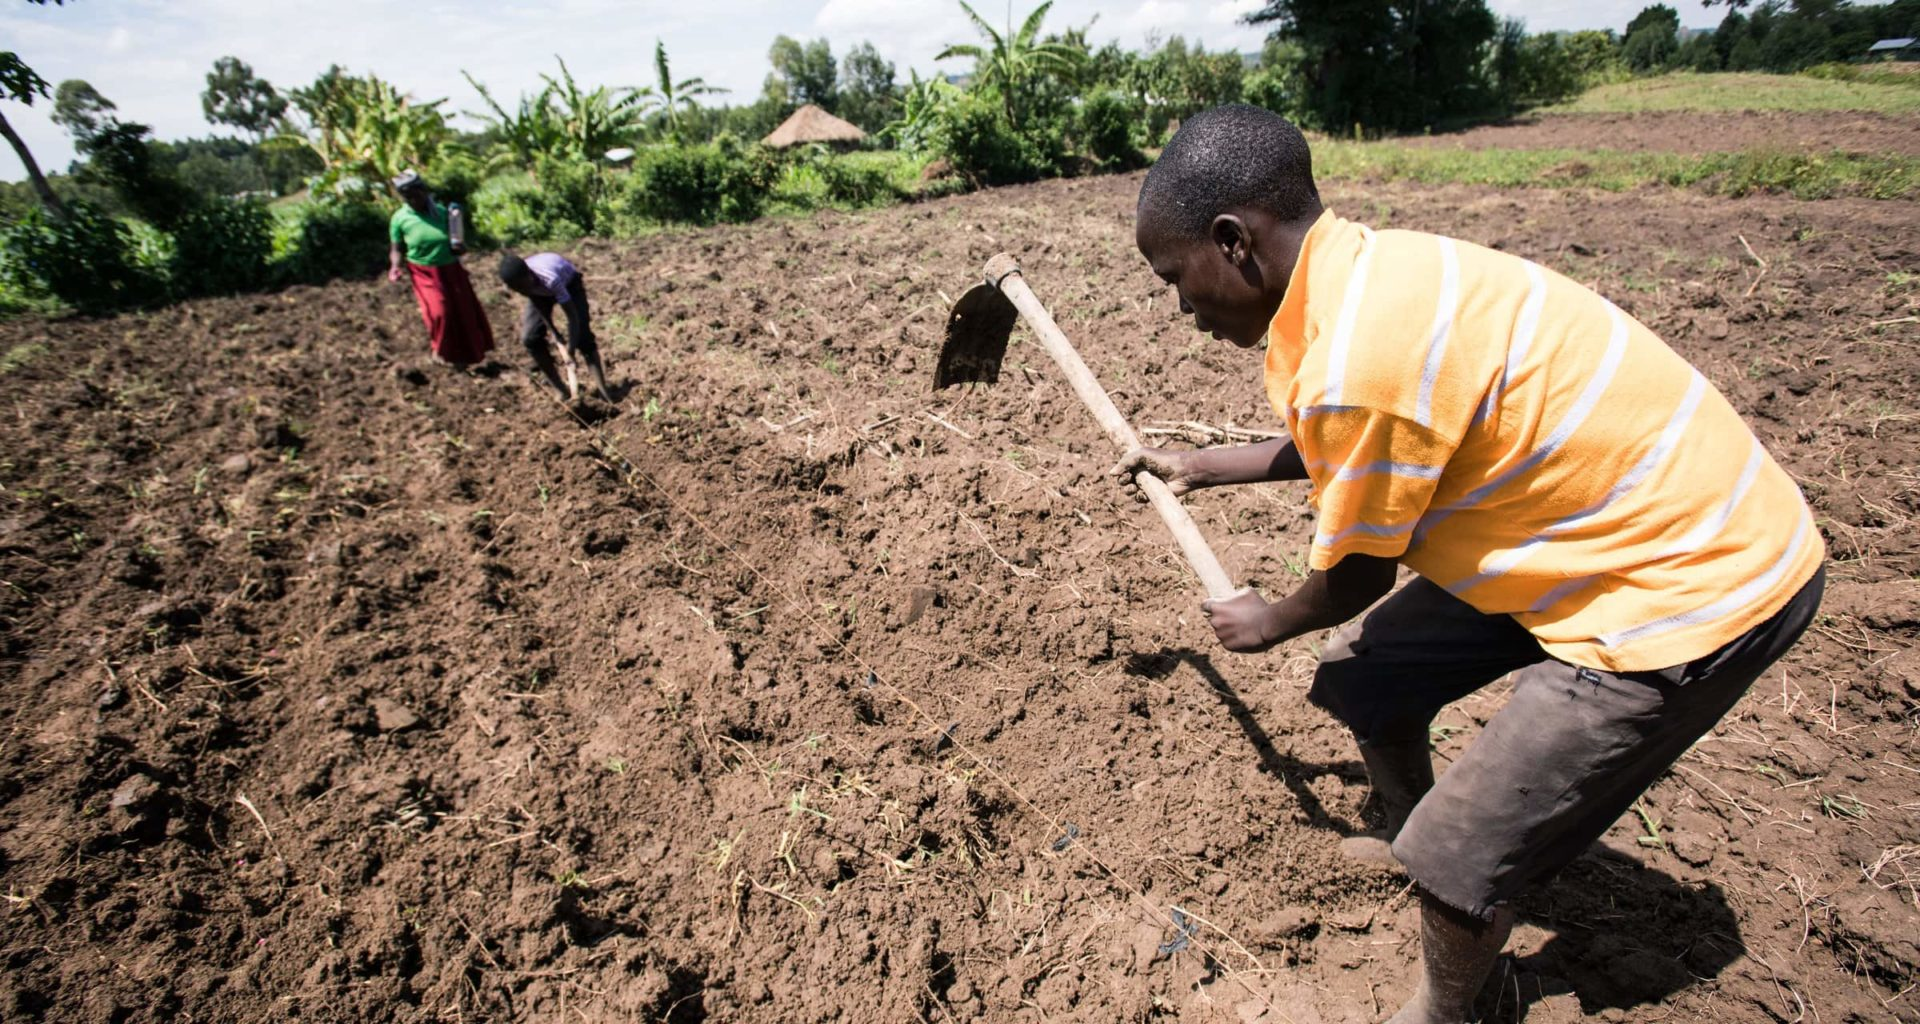 Climate Change Demolishes Farming In Africa Millions Threatened With Starvation